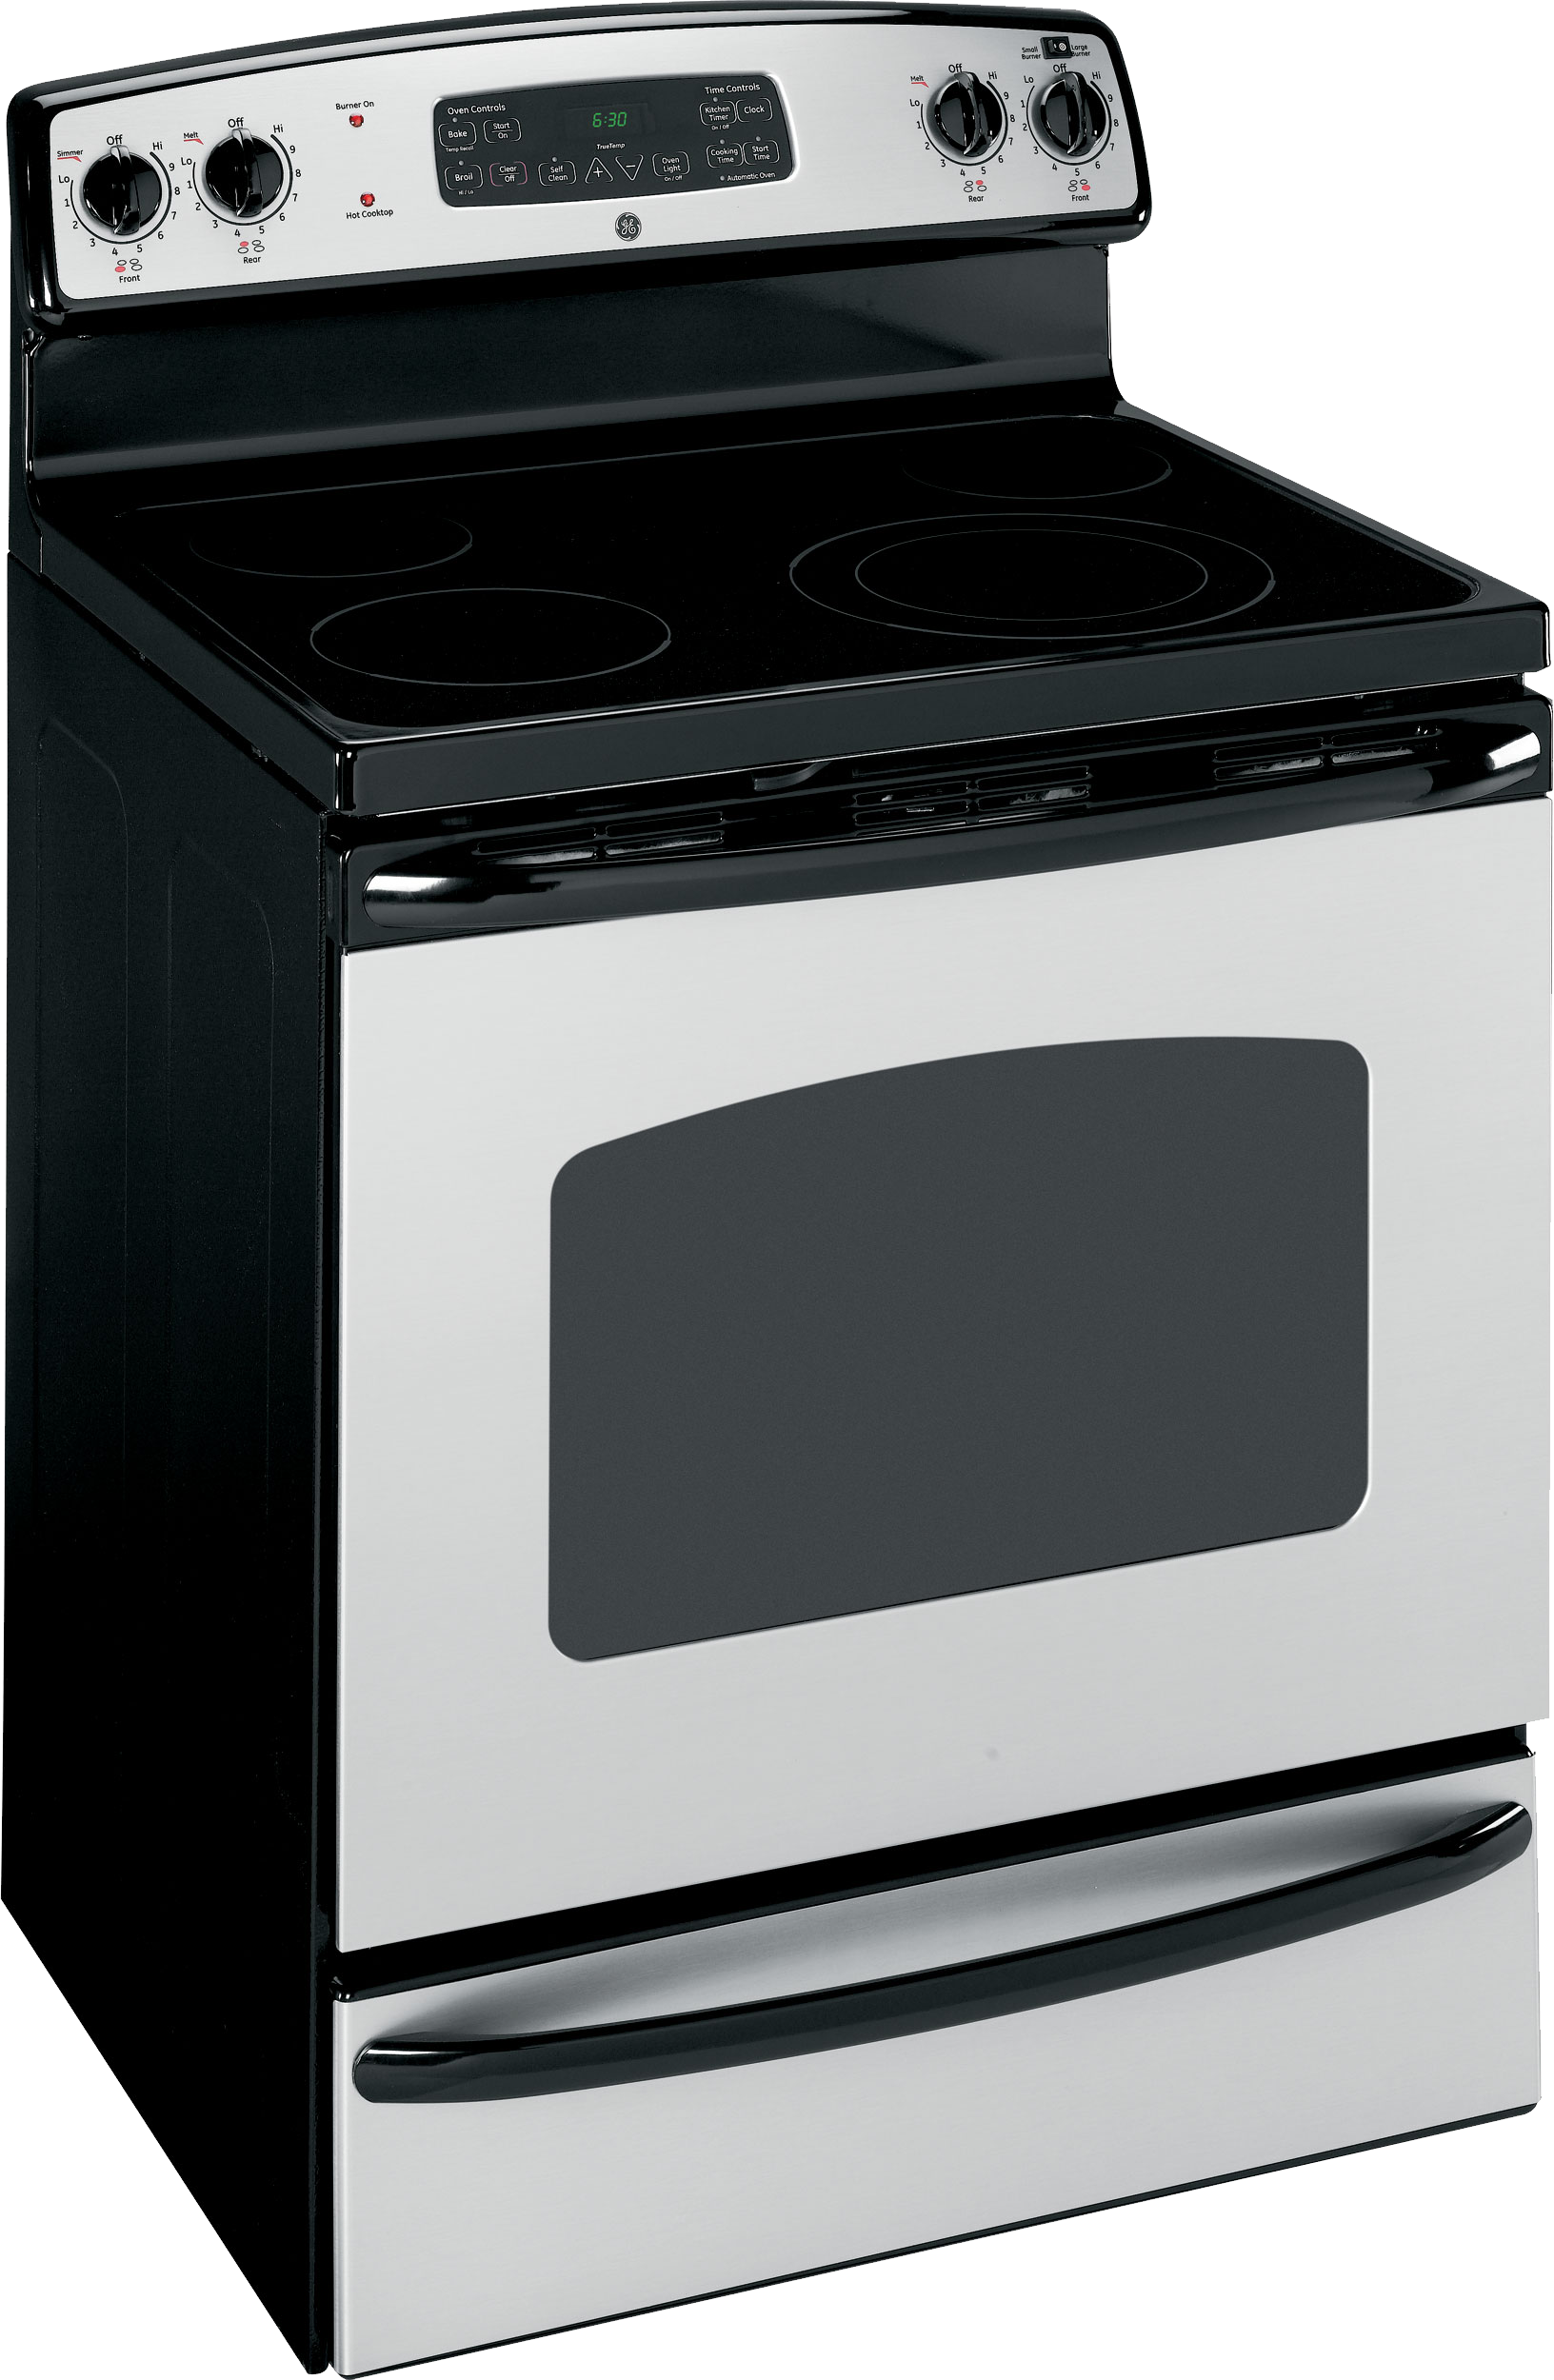 Stove clipart front. In png web icons